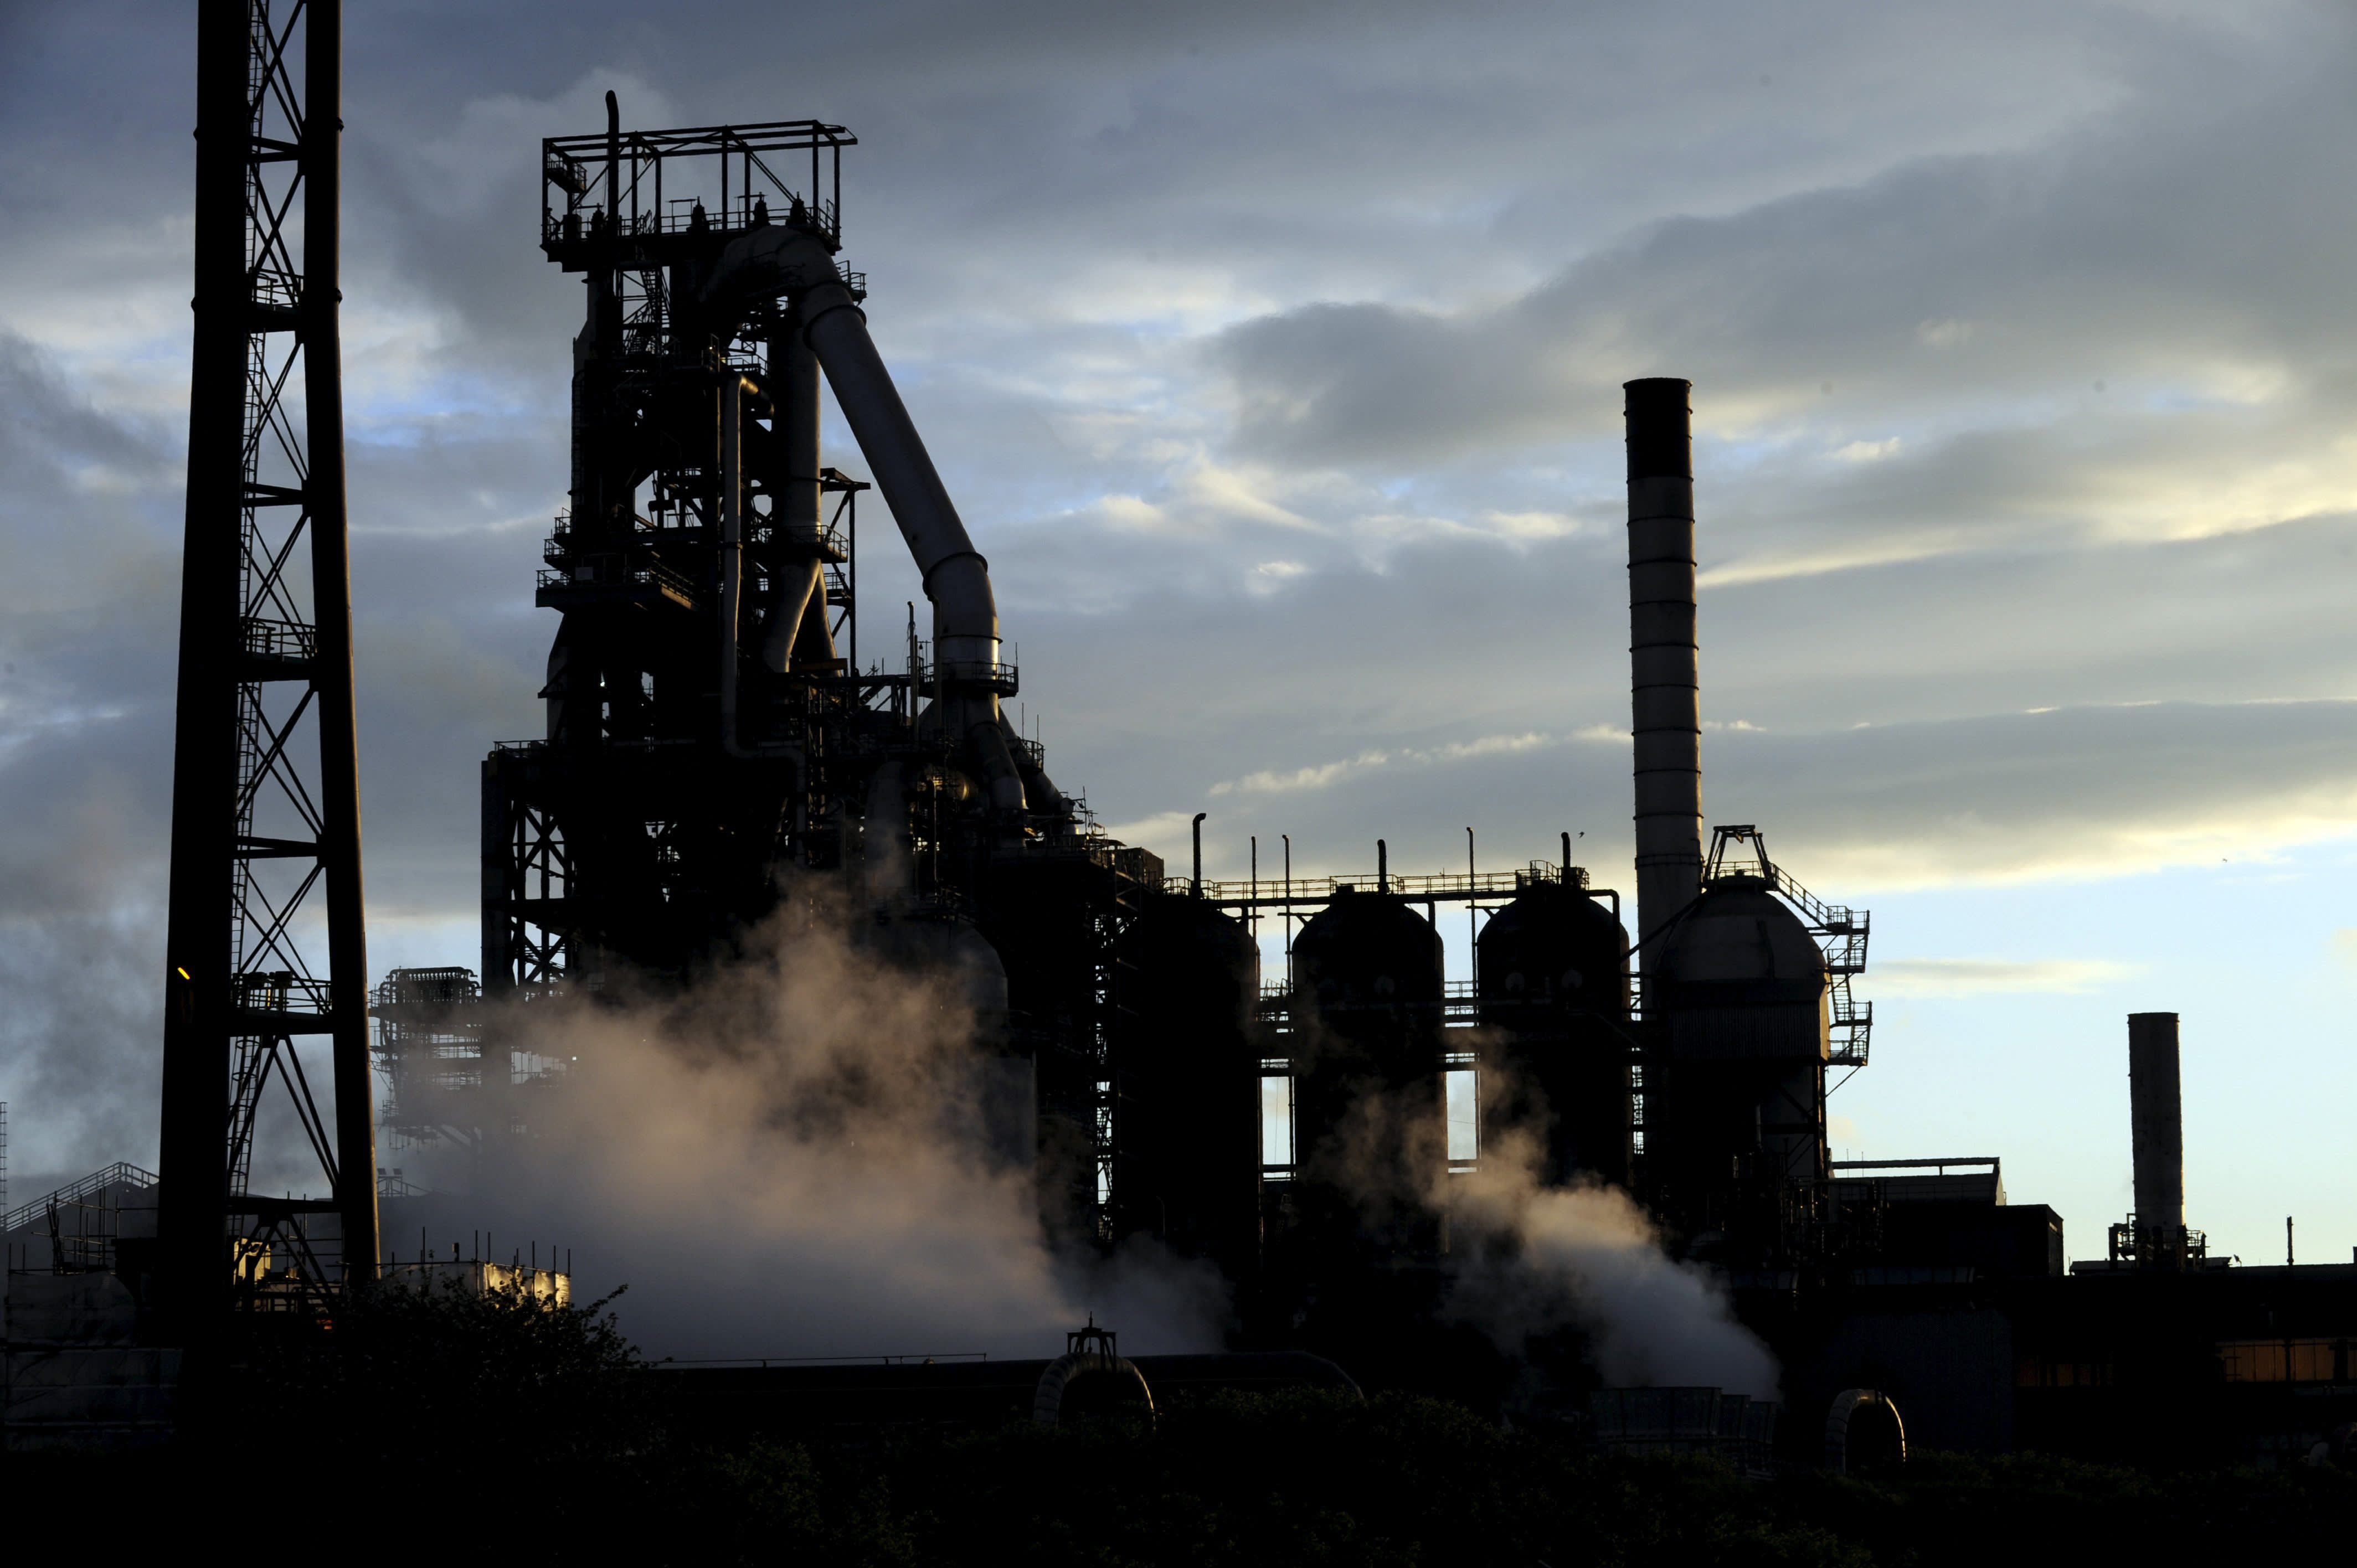 Steelworker calls on FCA to review pension transfer documents